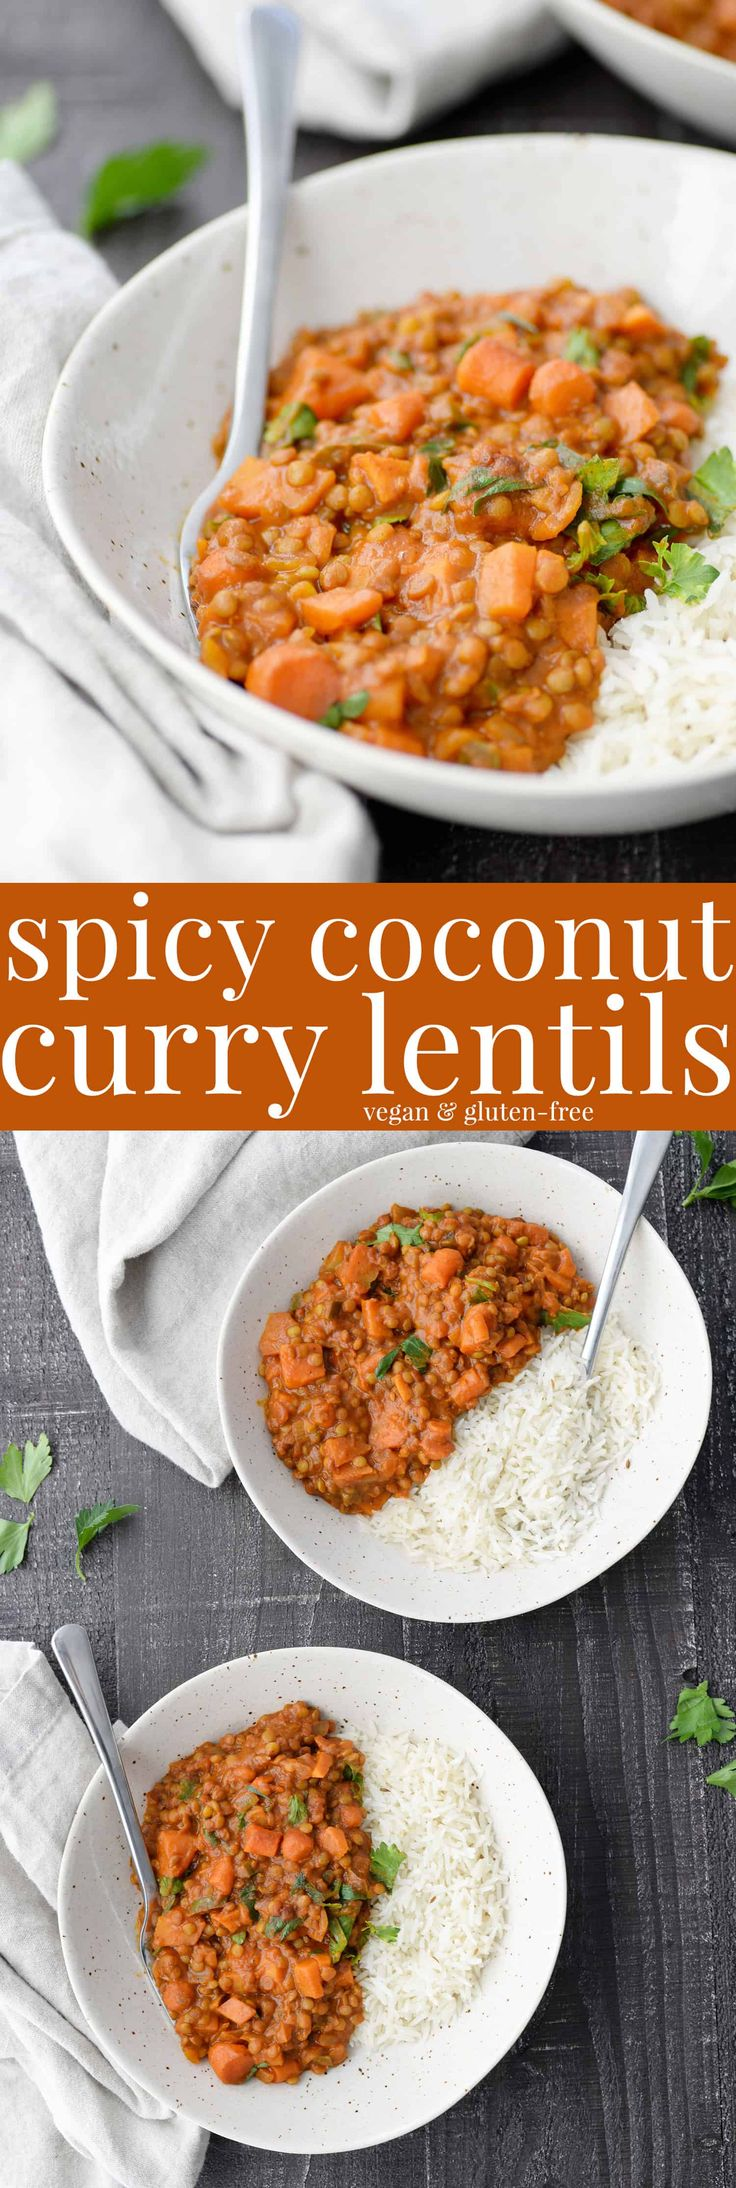 Spicy Vegan Coconut Curry Lentils! These lentils are the perfect quick weeknight meal. Curried lentils in a tomato coconut sauce, ready in just 30 minutes! #vegan and #glutenfree | www.delishknowledge.com